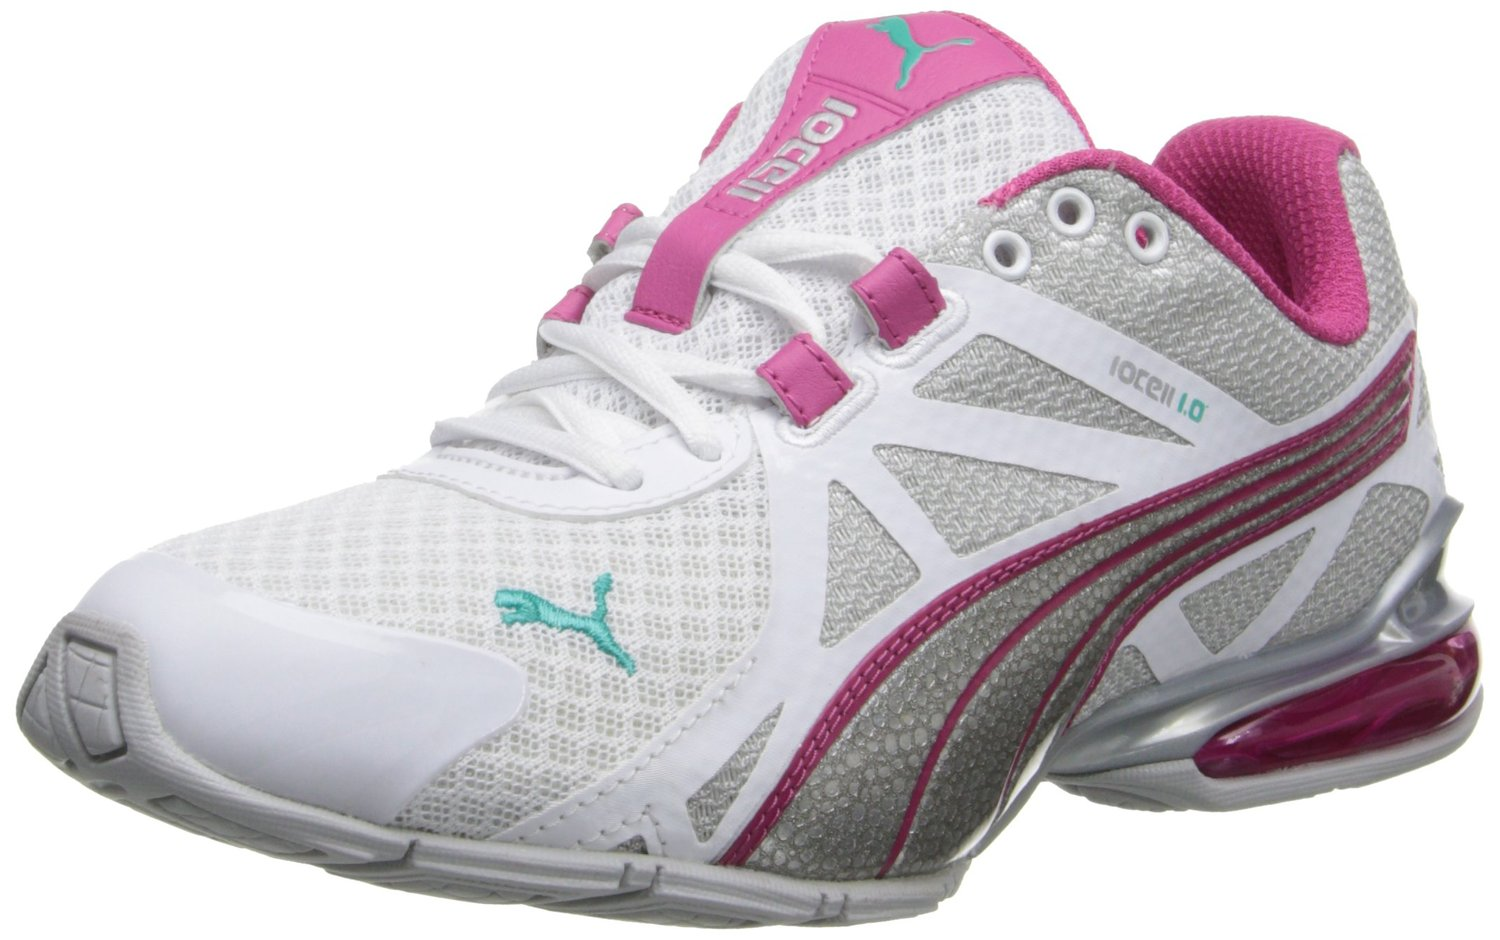 puma women's voltaic 5 running shoe